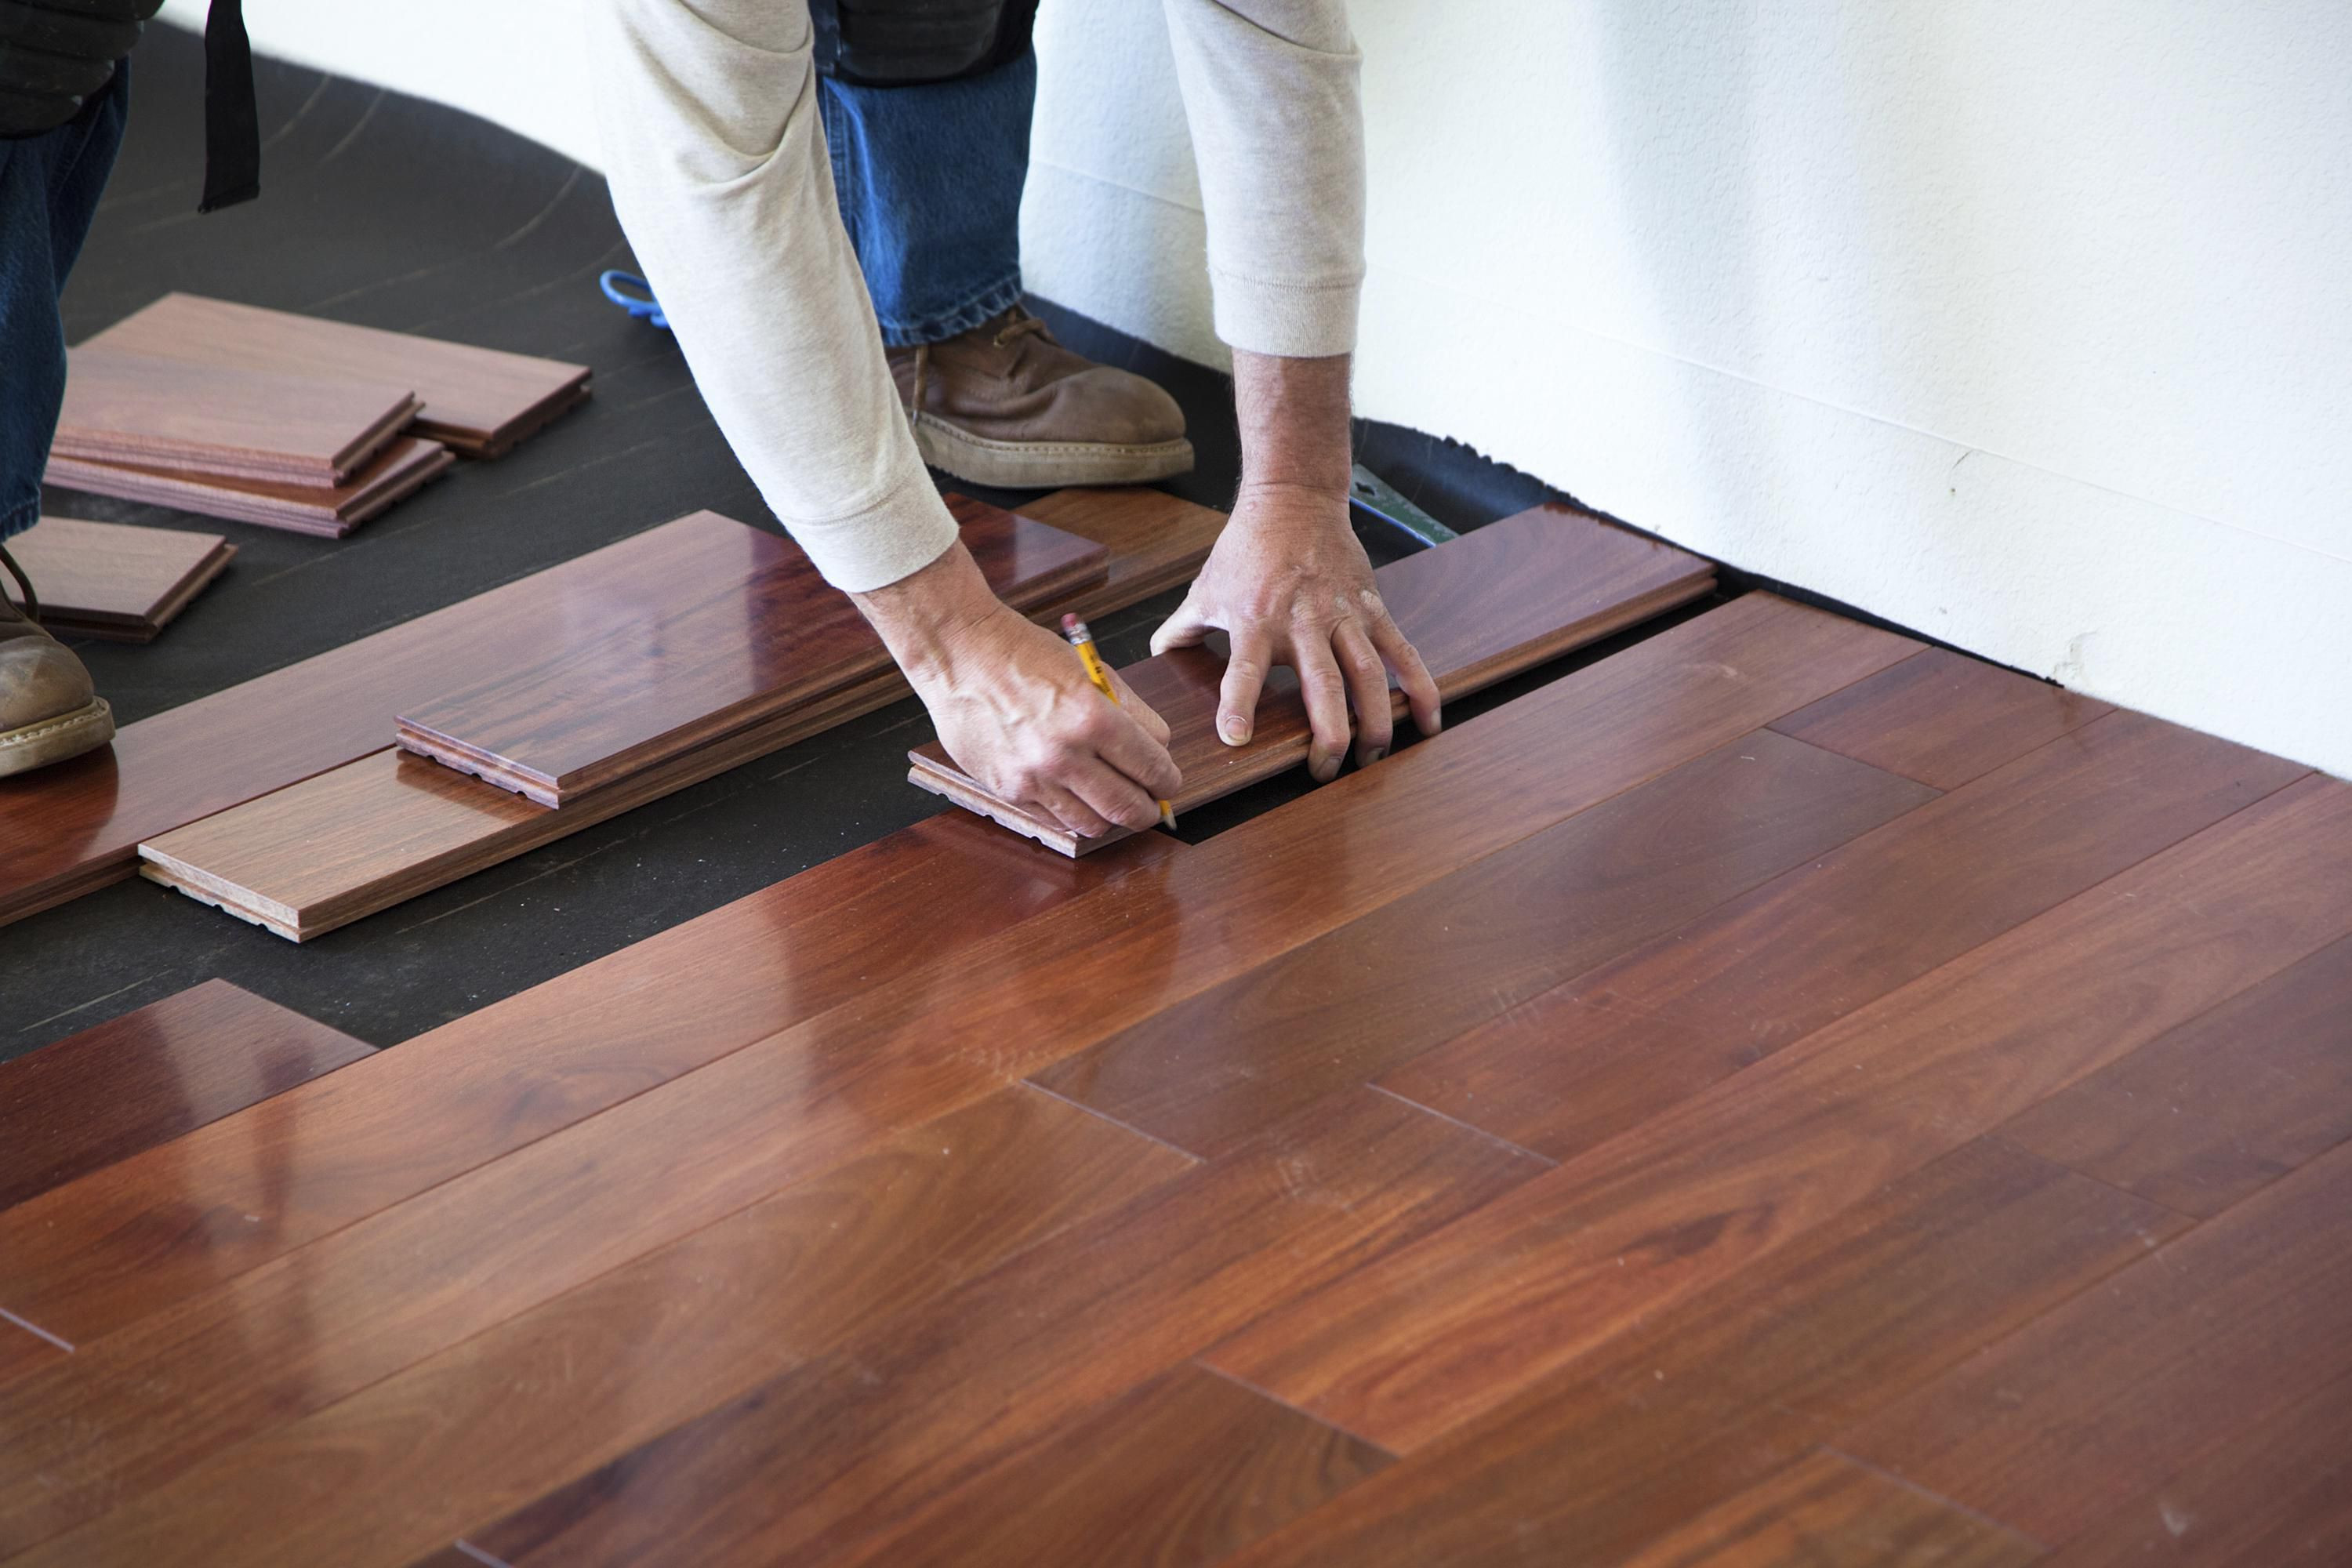 Hardwood Floor Cleaning Service Cost Of Brazilian Hardwood Floor Basics Inside 170040982 56a49f213df78cf772834e21